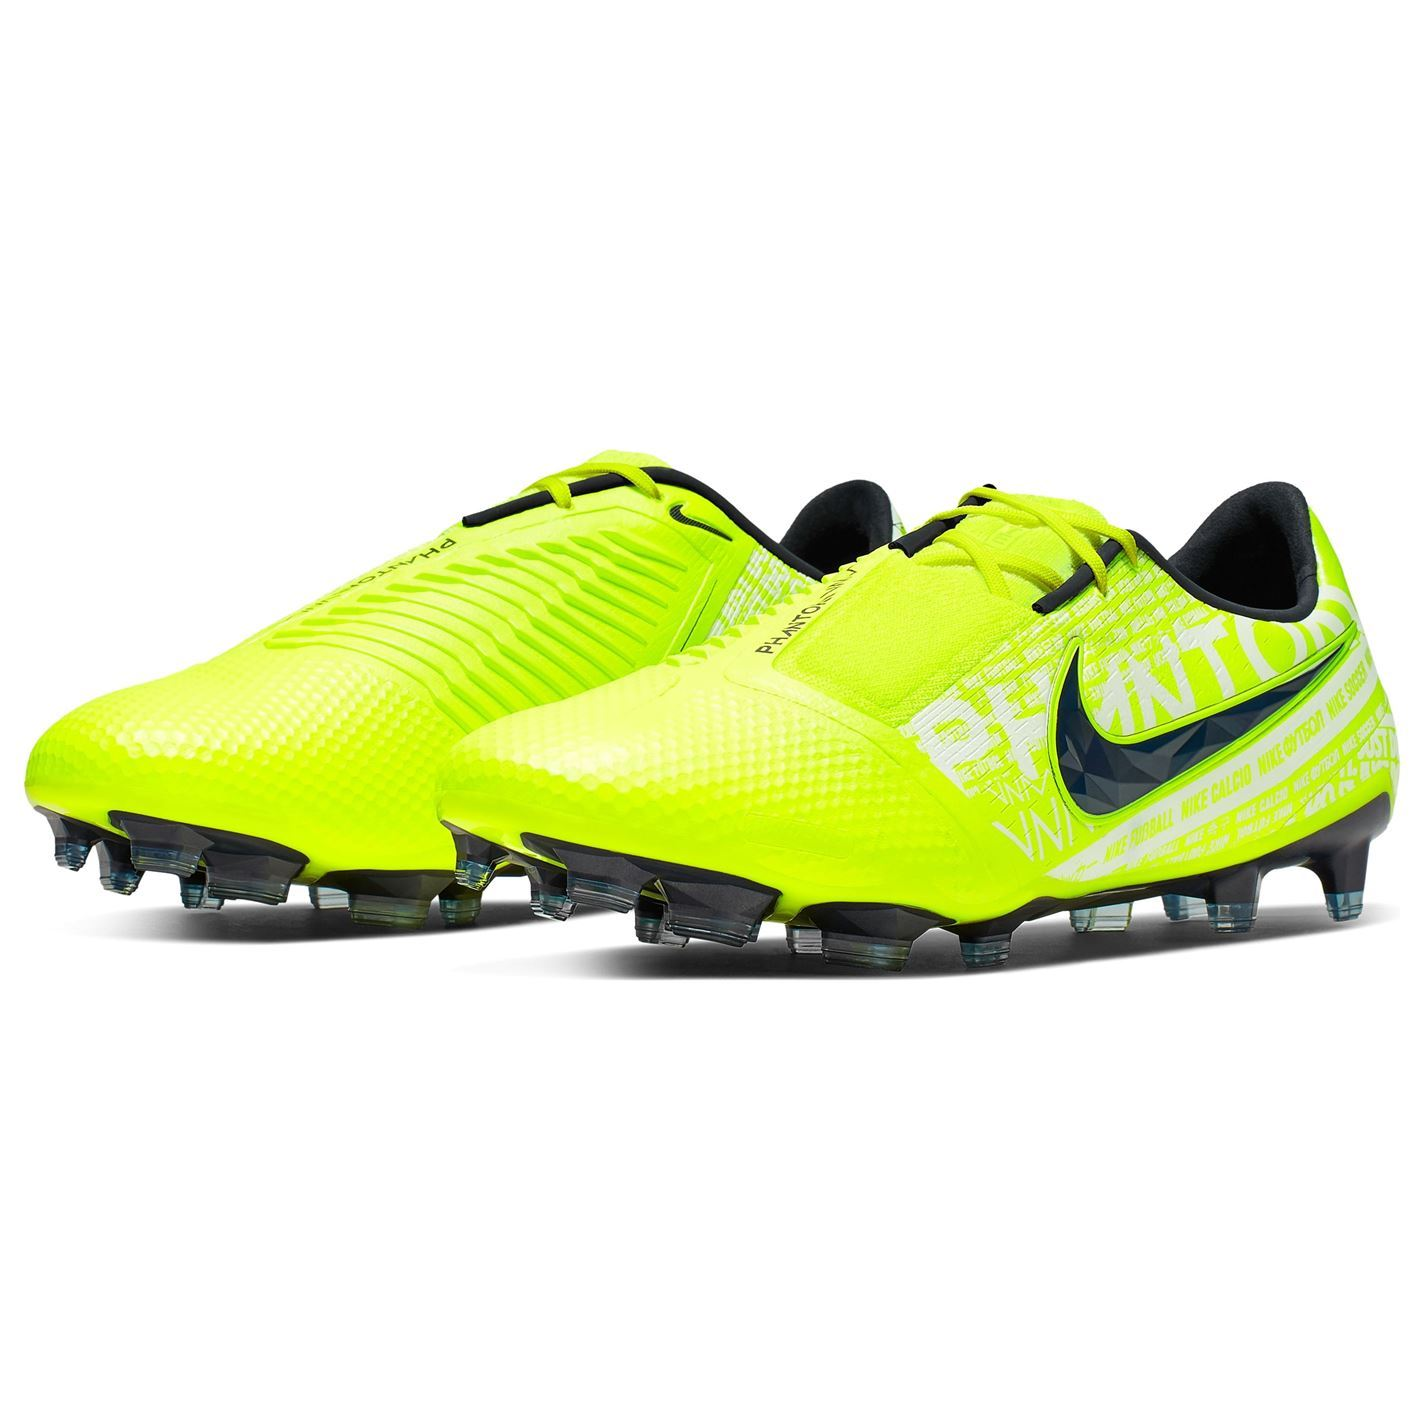 Nike-Phantom-Venom-Elite-Homme-FG-Firm-Ground-Chaussures-De-Football-Chaussures-de-foot-crampons miniature 20